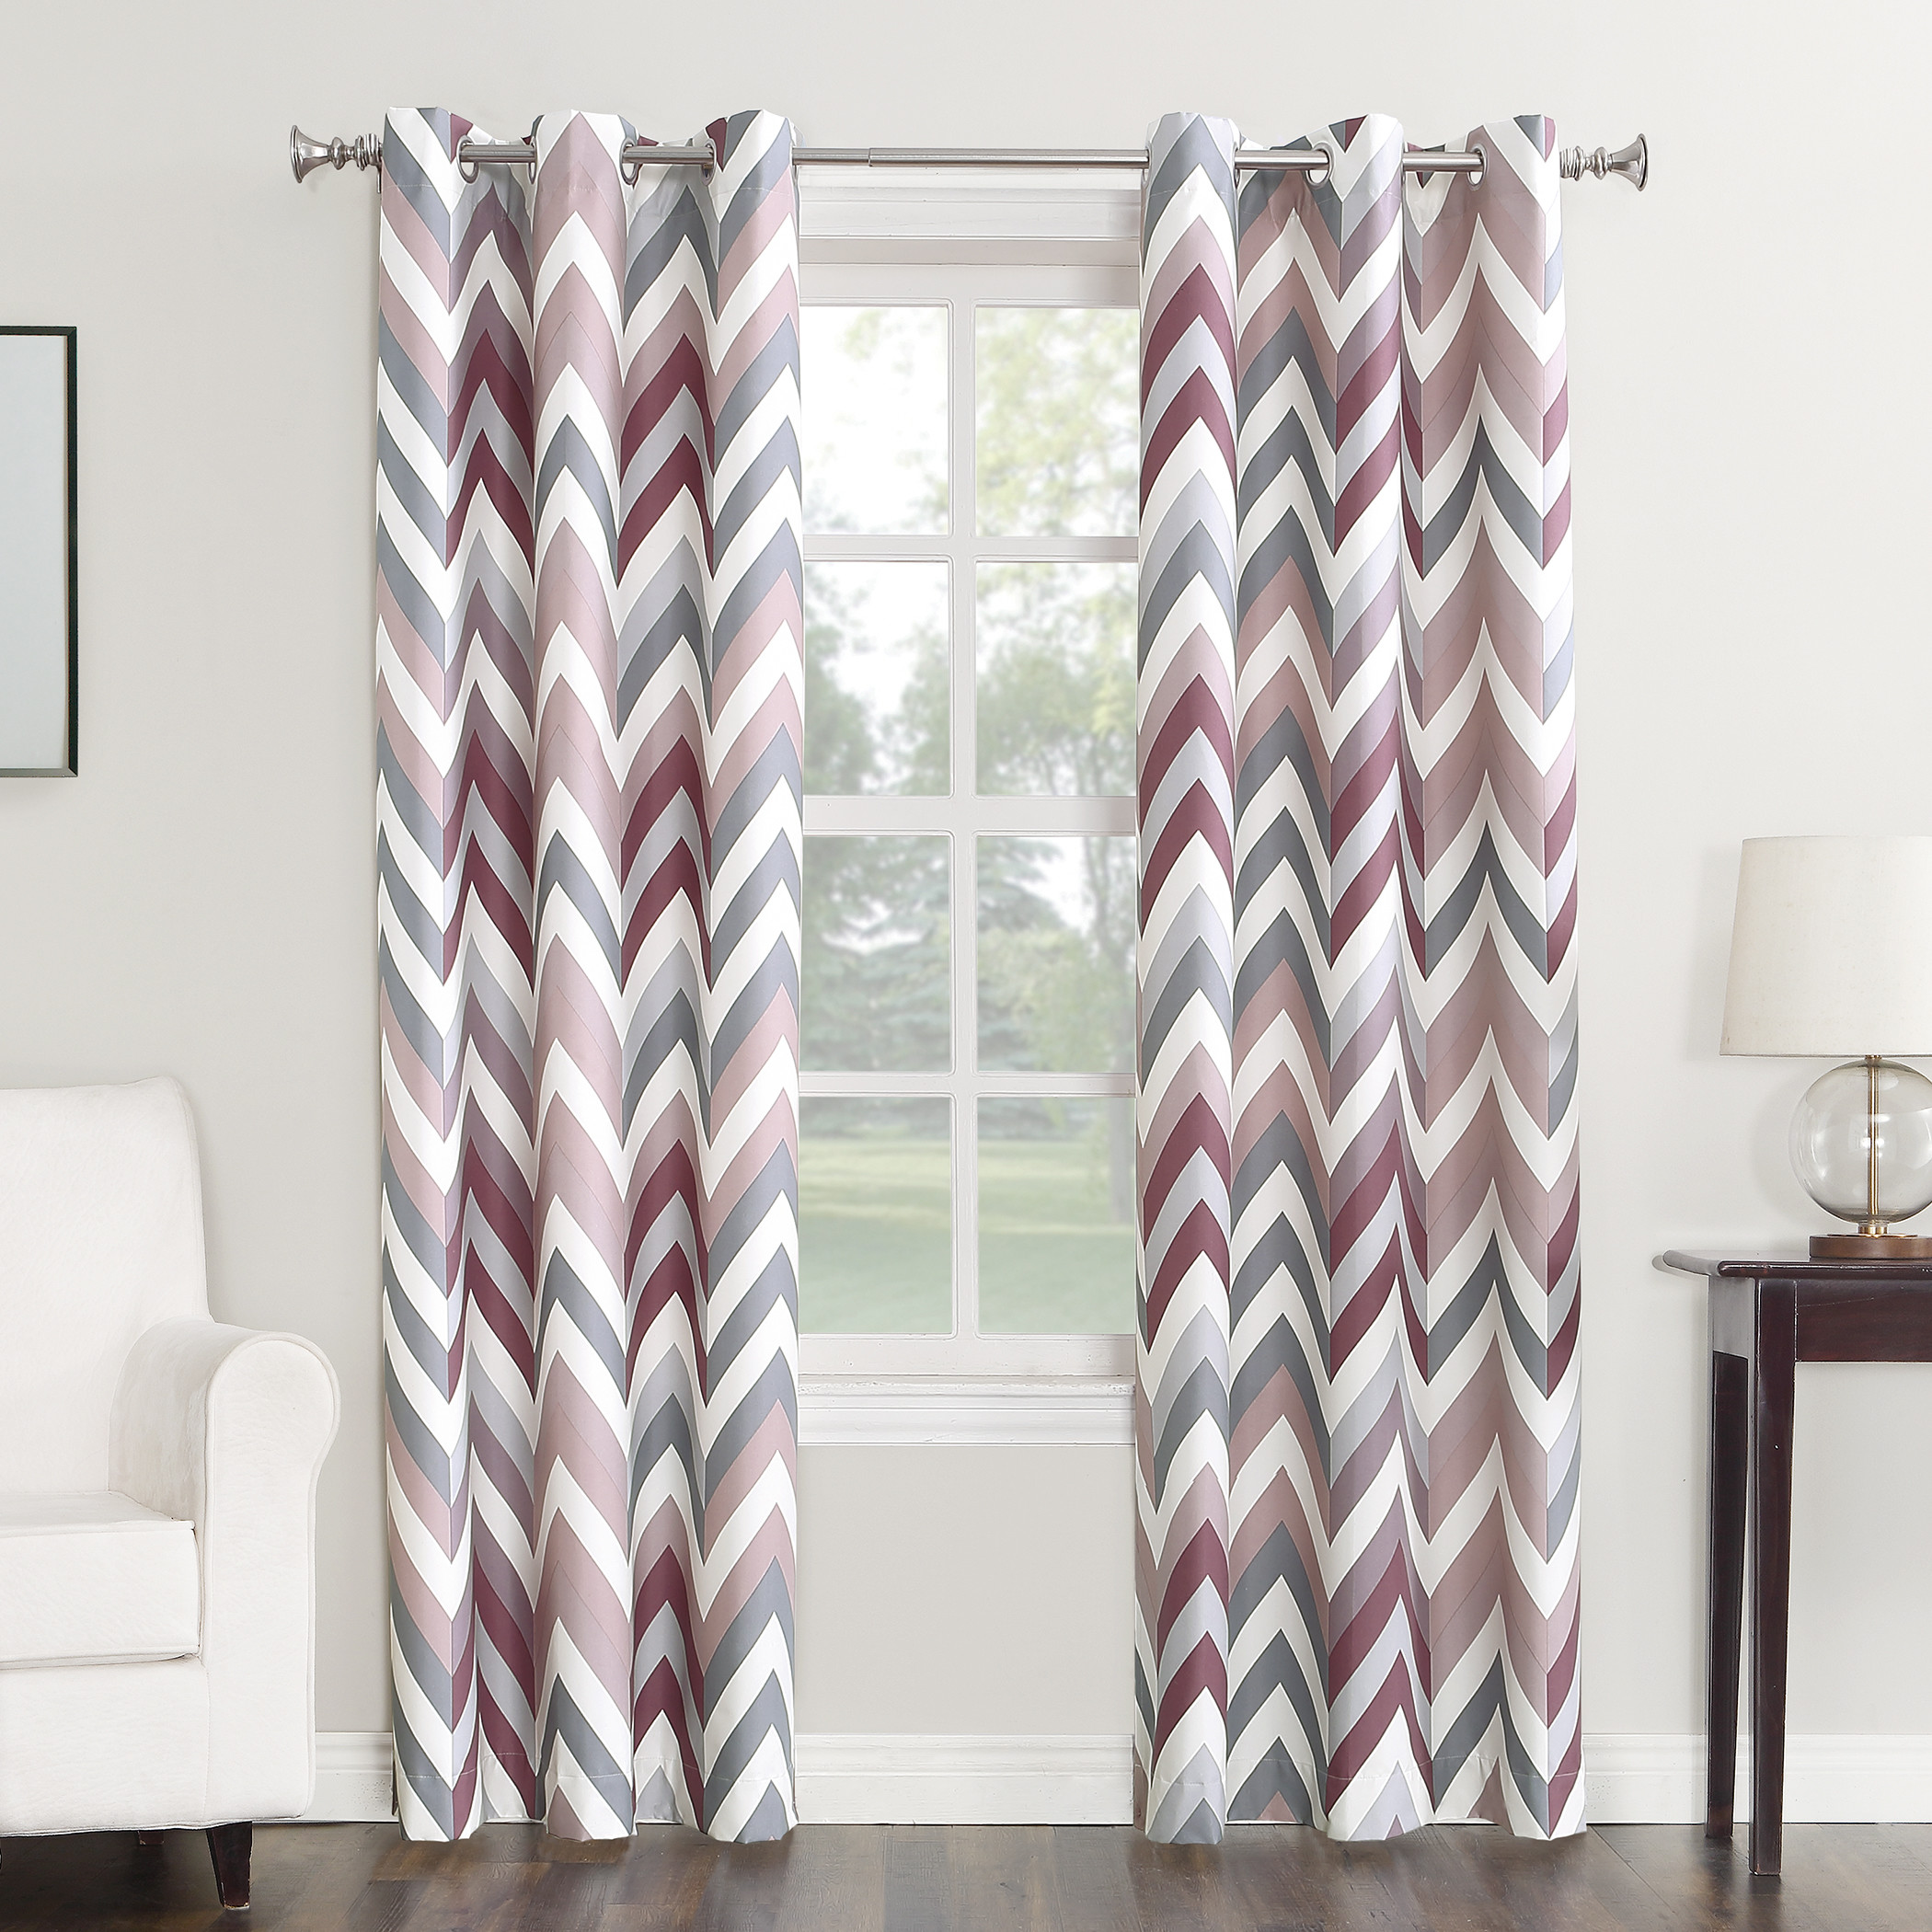 Sun Zero Largo Chevron Print Thermal Insulated Energy Efficient Curtain Panel by S. Lichtenberg & Co.